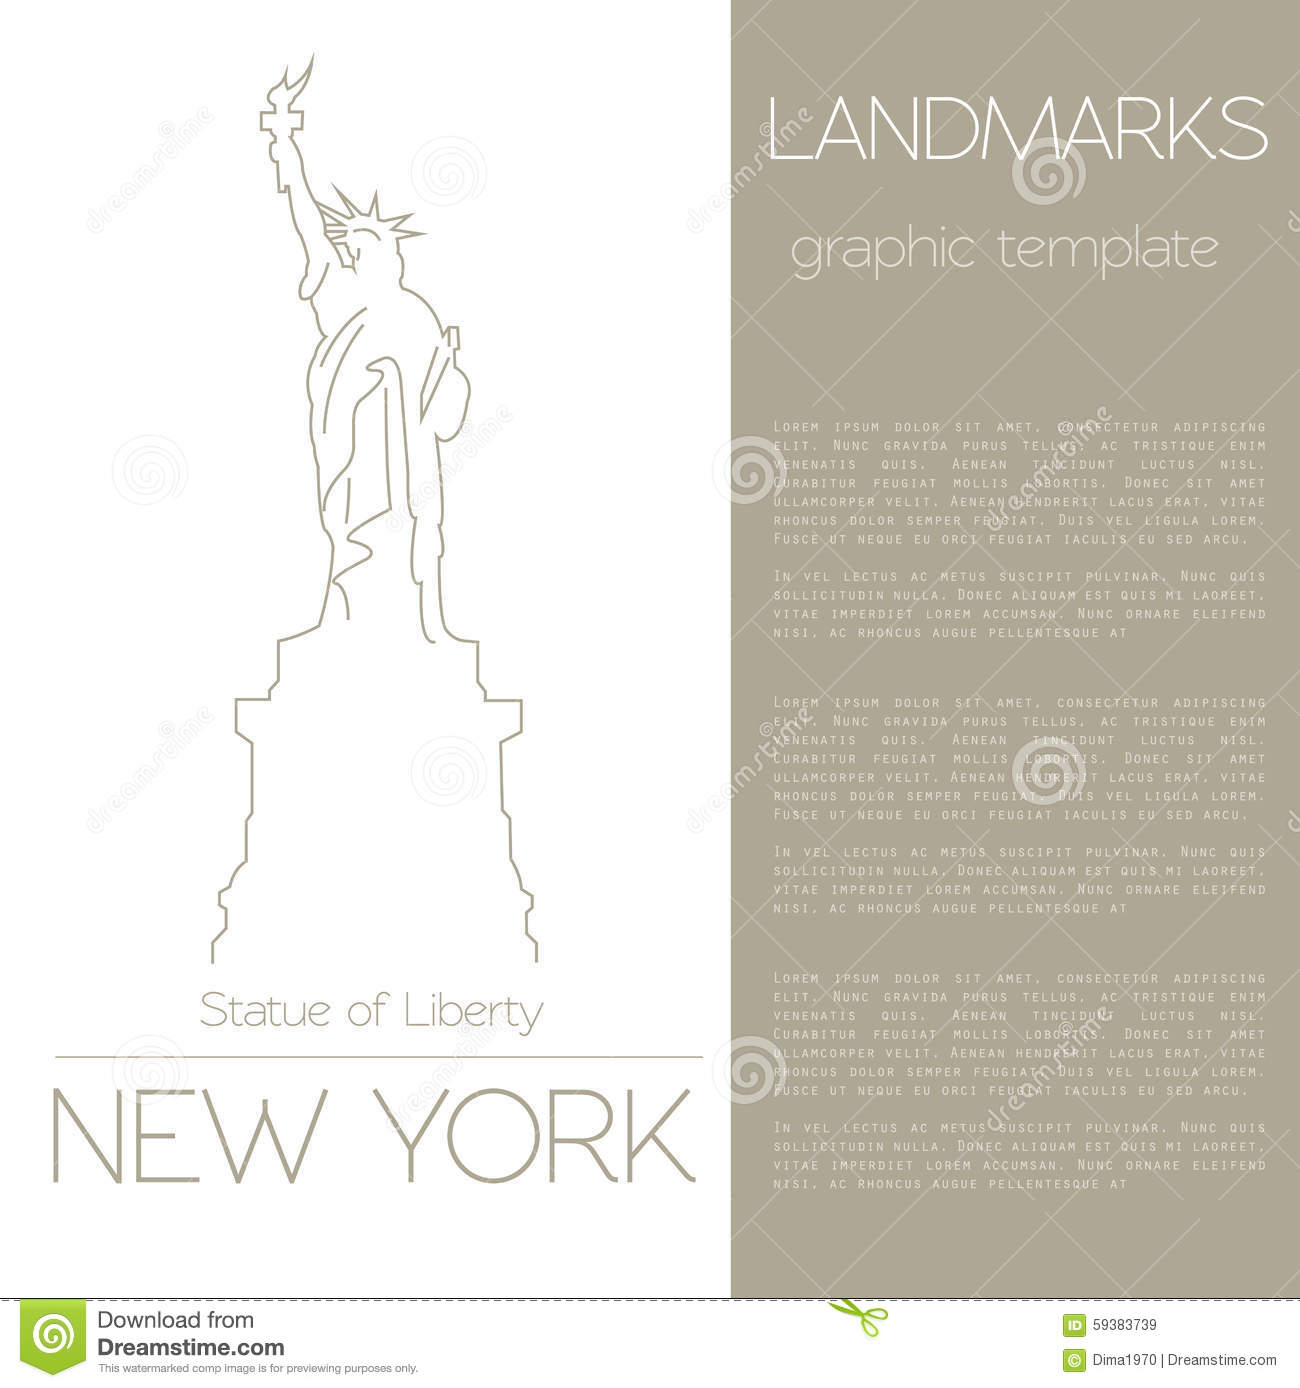 world landmarks new york usa statue of liberty graphic template